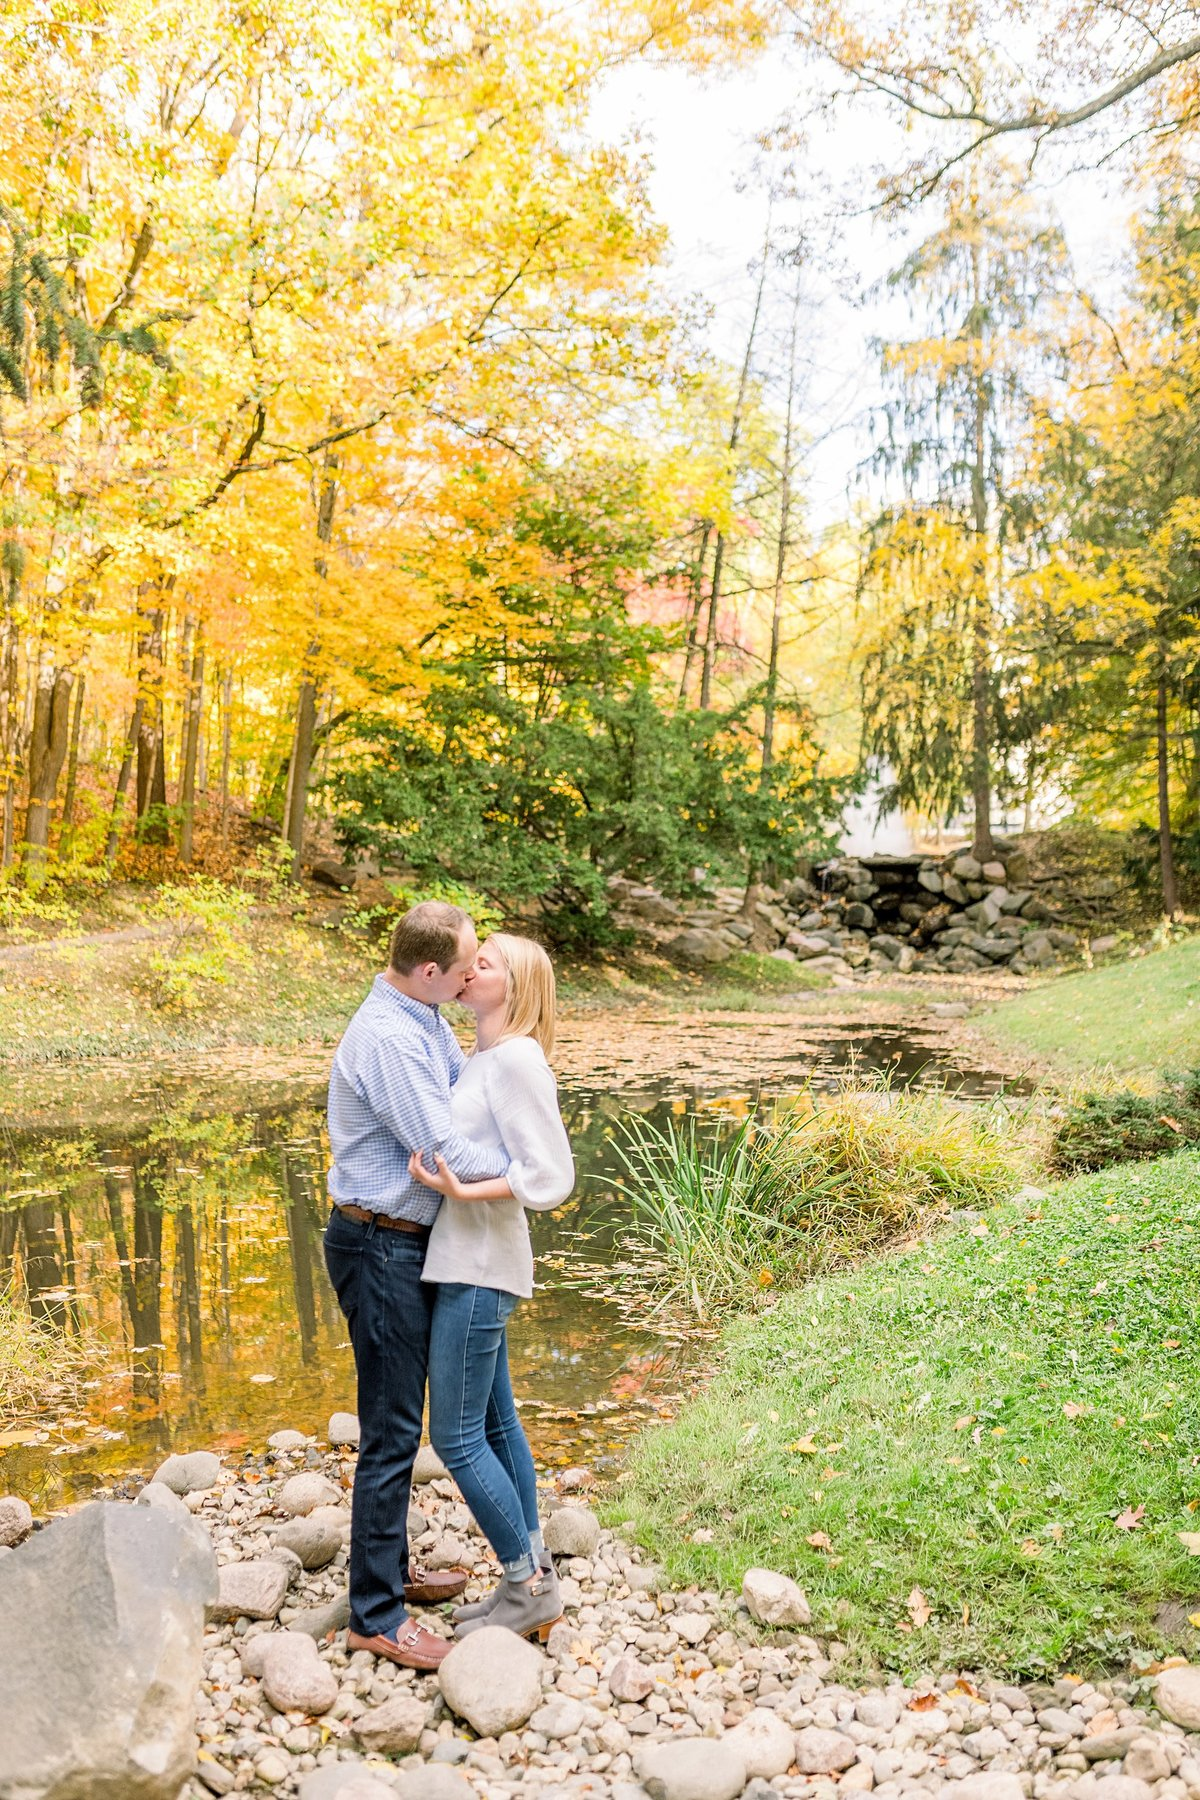 Holcomb Gardens Engagement Session Indianapolis, Indiana Wedding Photographer Alison Mae Photography_3184